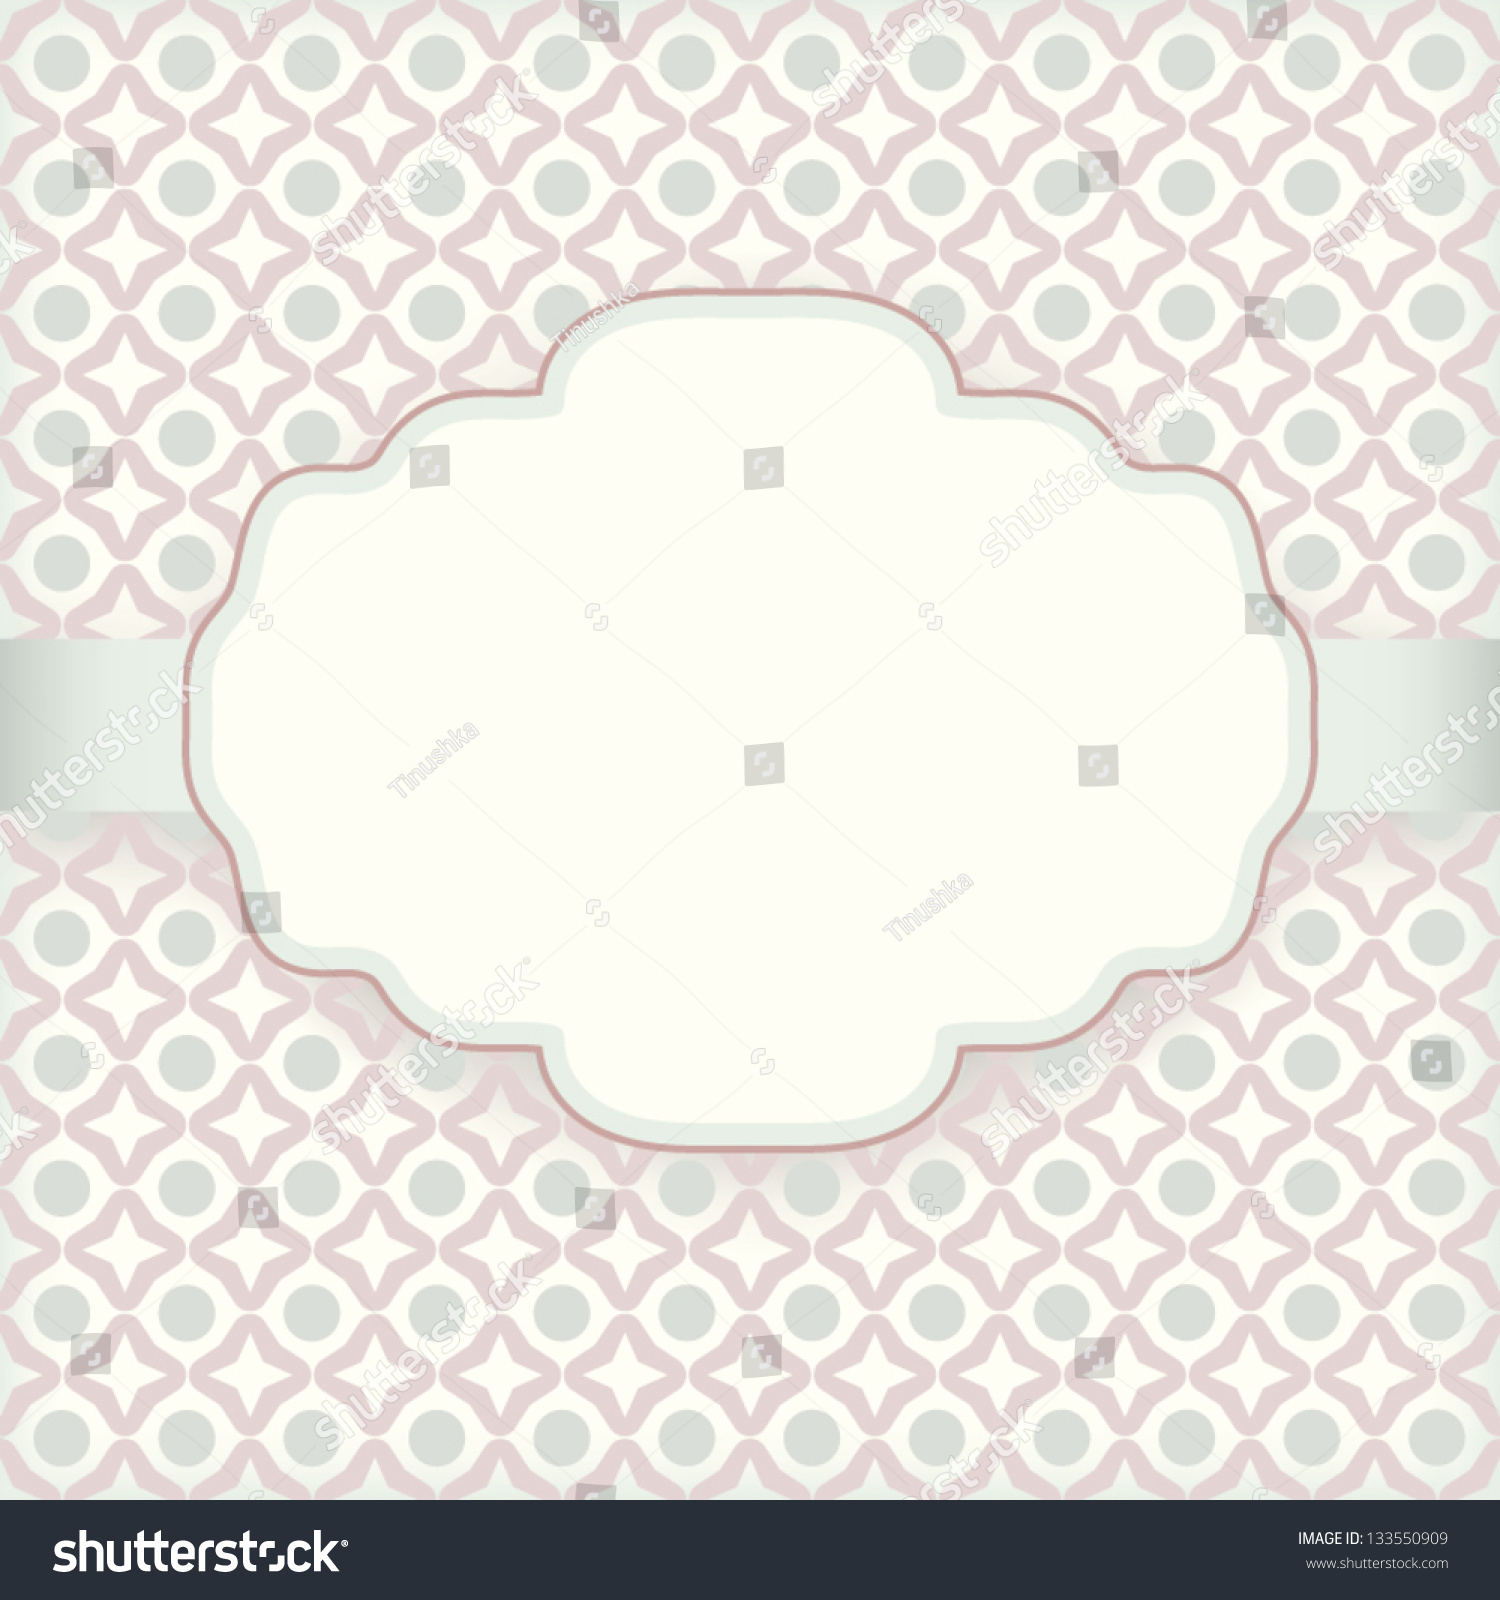 cute vintage invitation card pattern background stock vector royalty free 133550909 https www shutterstock com image vector cute vintage invitation card pattern background 133550909